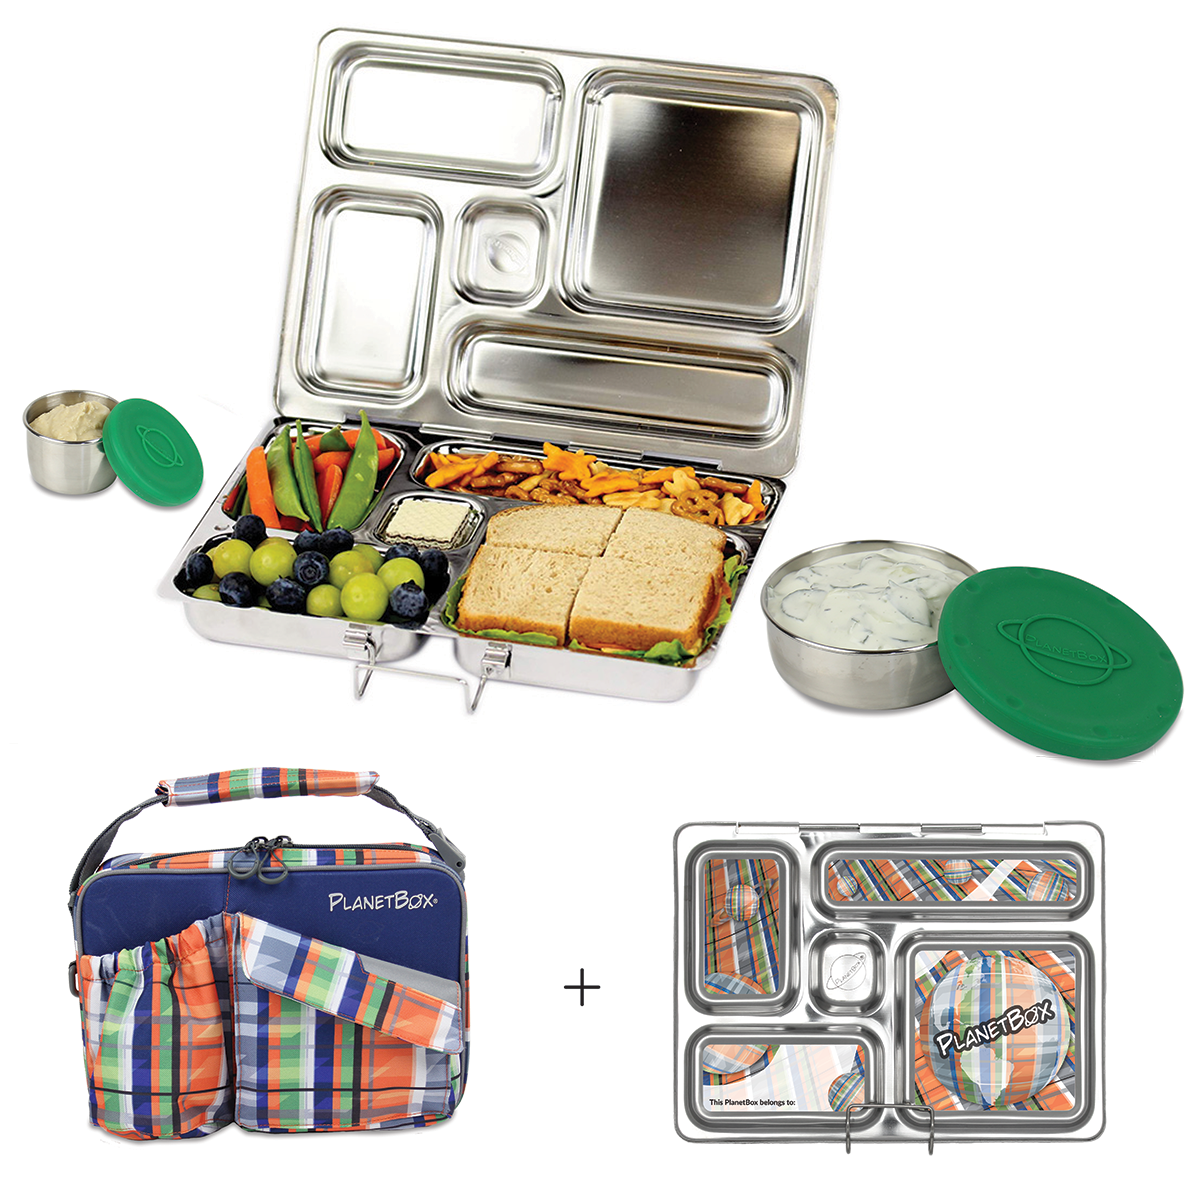 PlanetBox Rover Lunchbox - Plaid Carry Bag with Planet Pl...